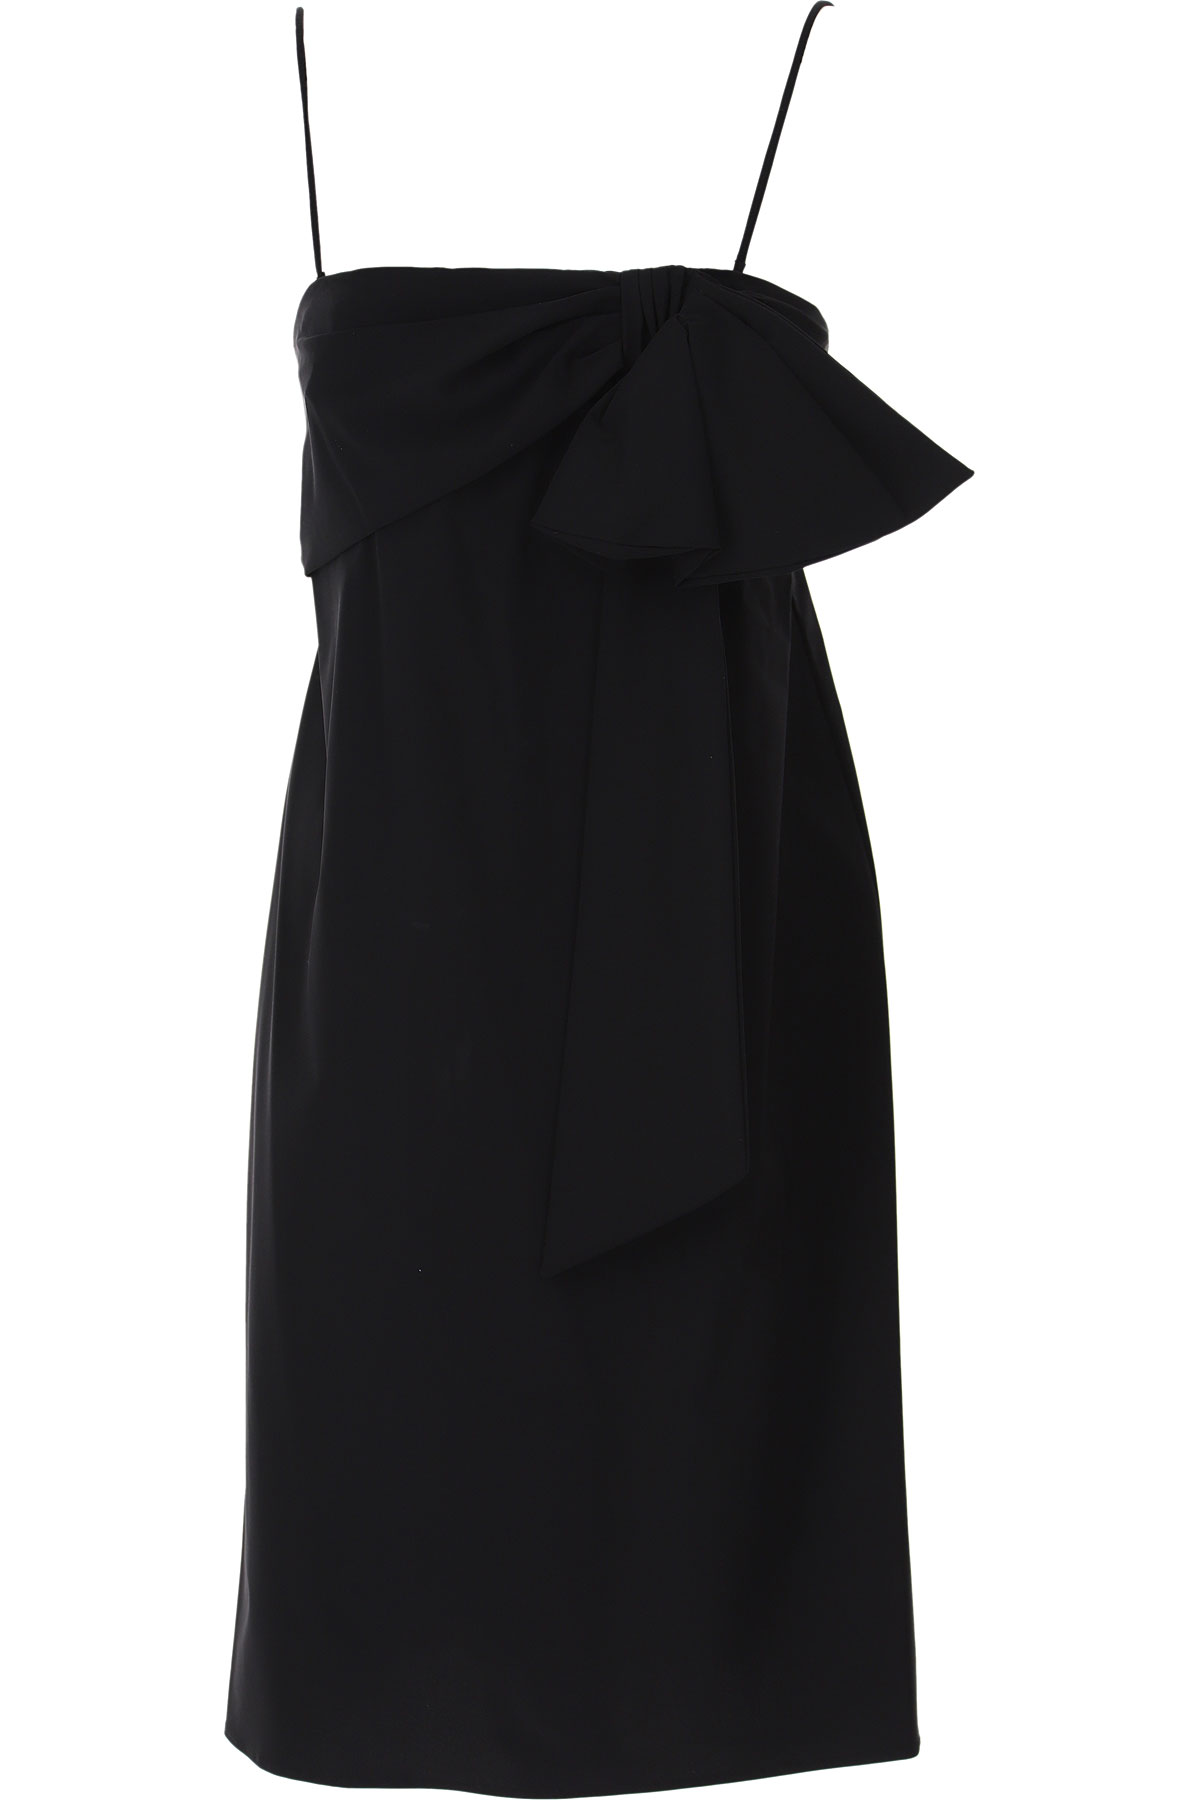 Dondup Dress for Women, Evening Cocktail Party On Sale, Black, polyamide, 2019, 4 6